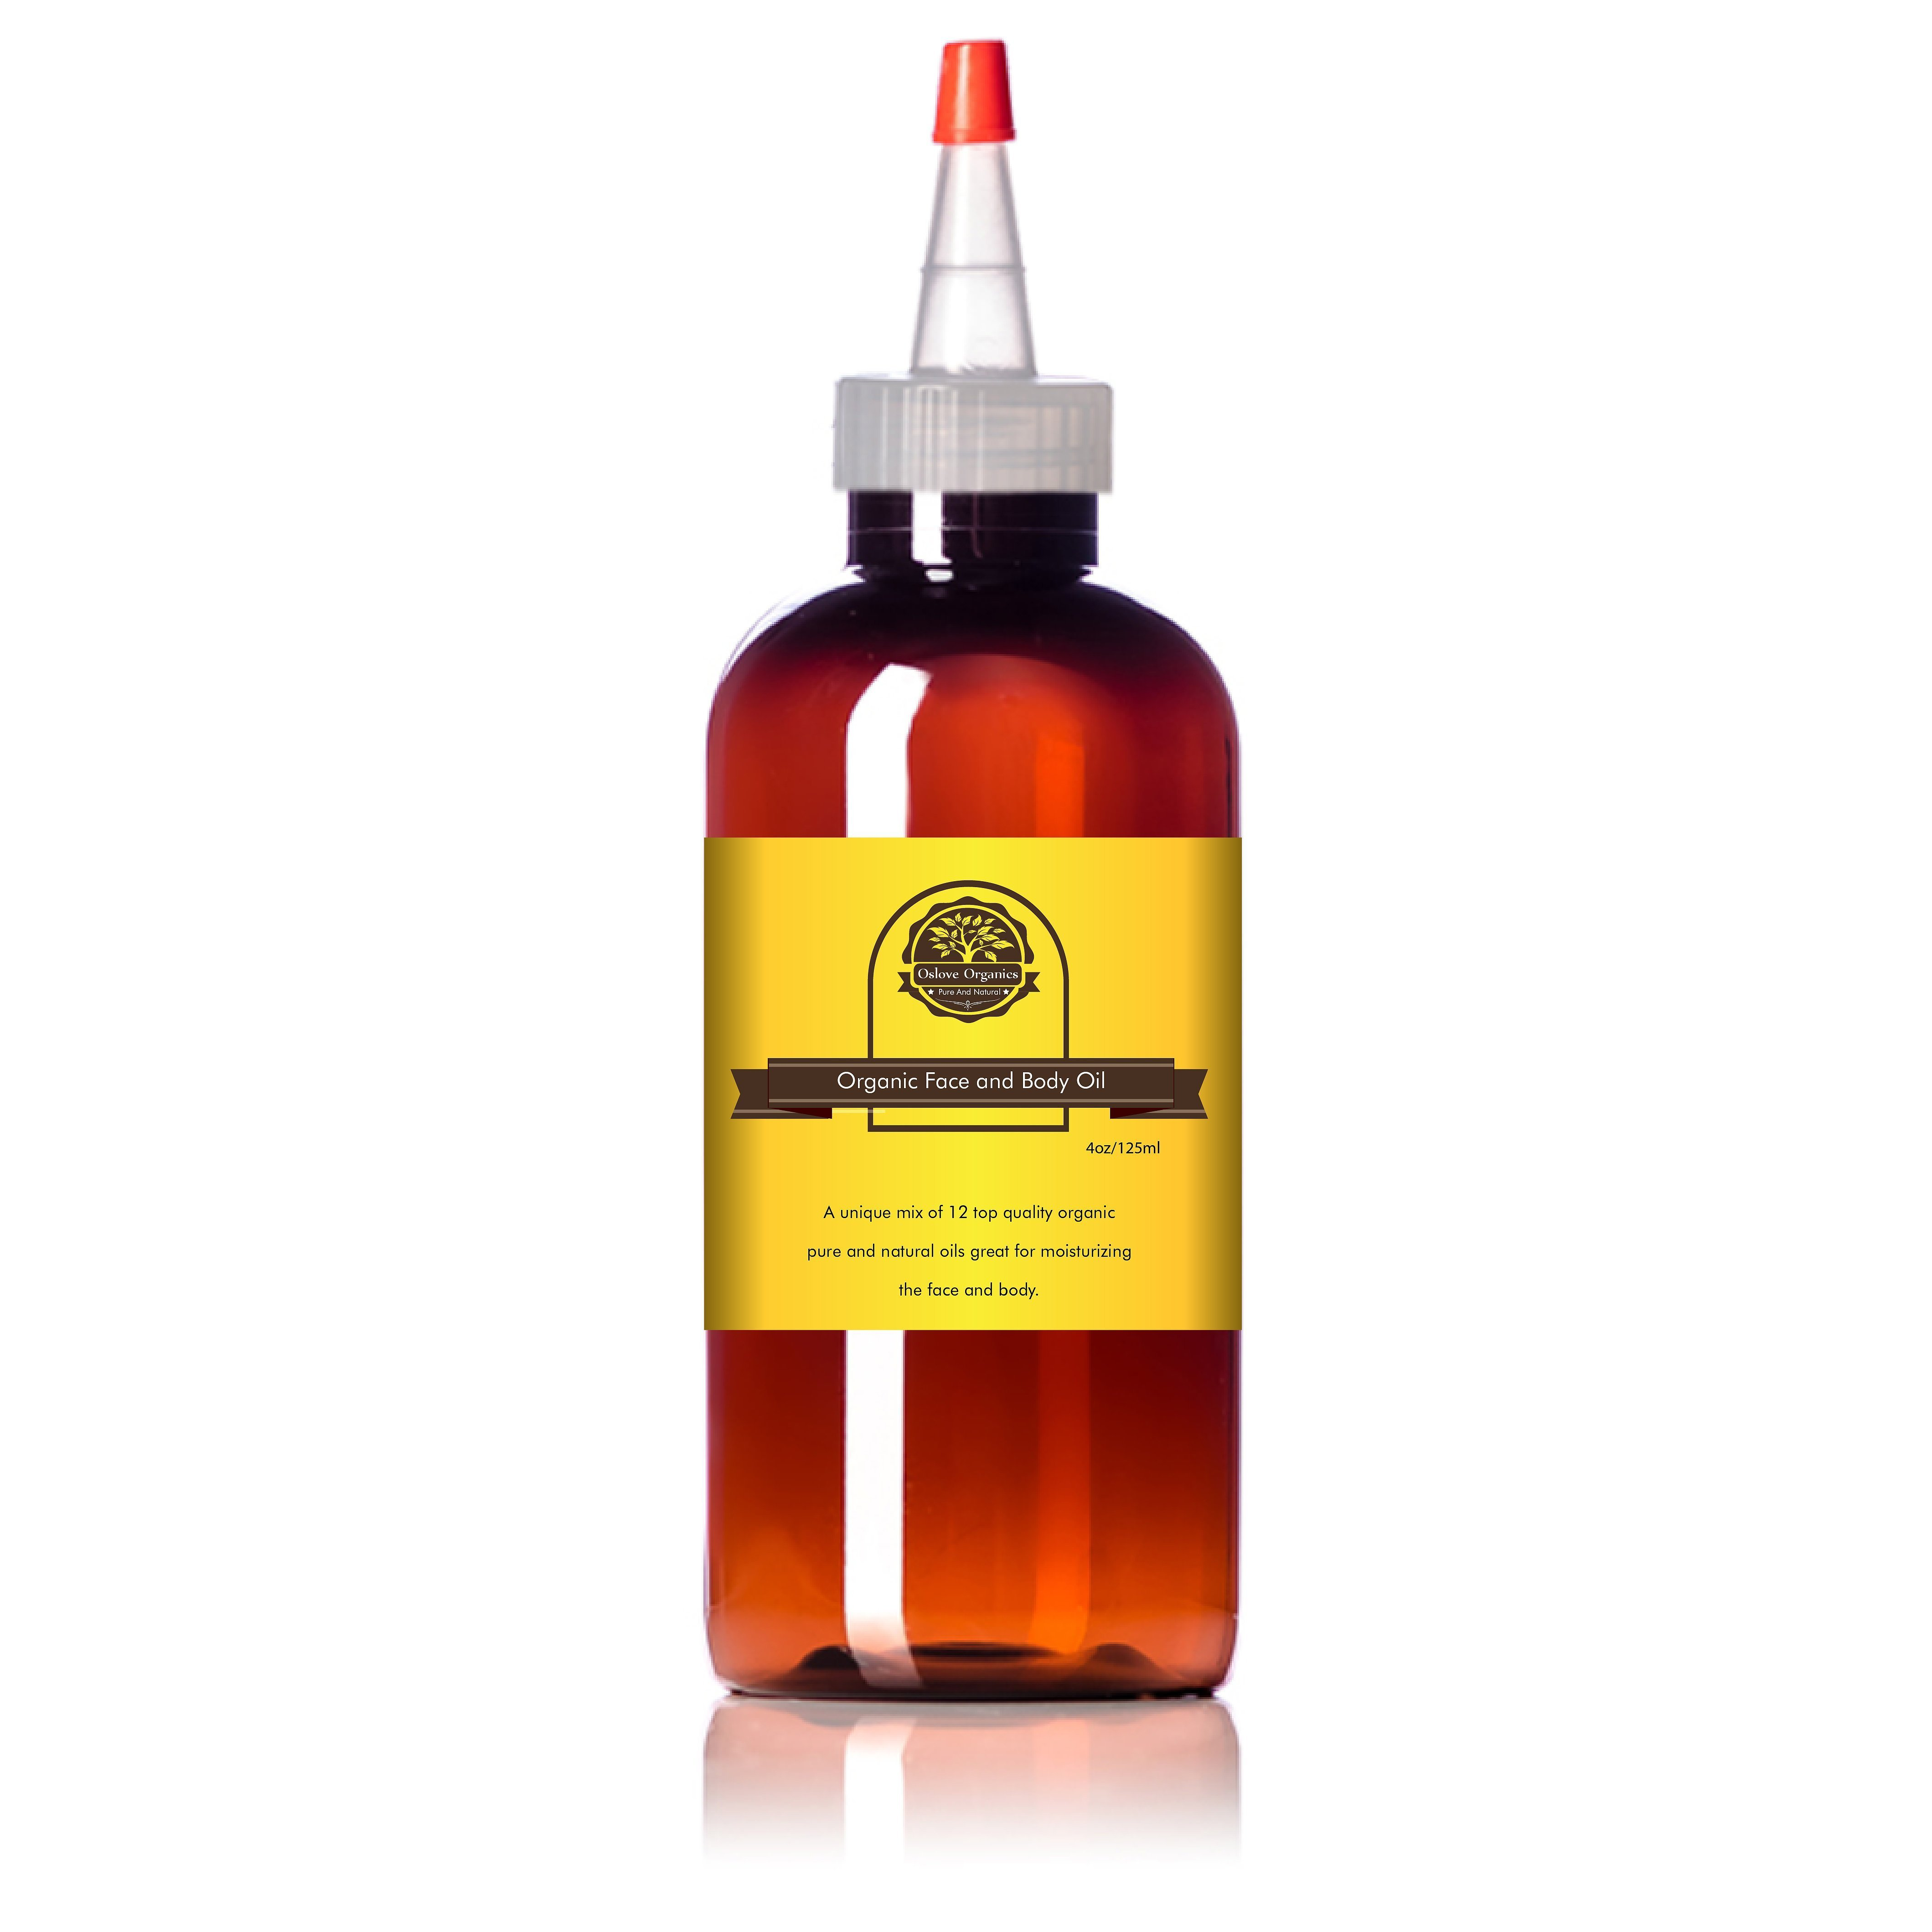 Organic face and body oil